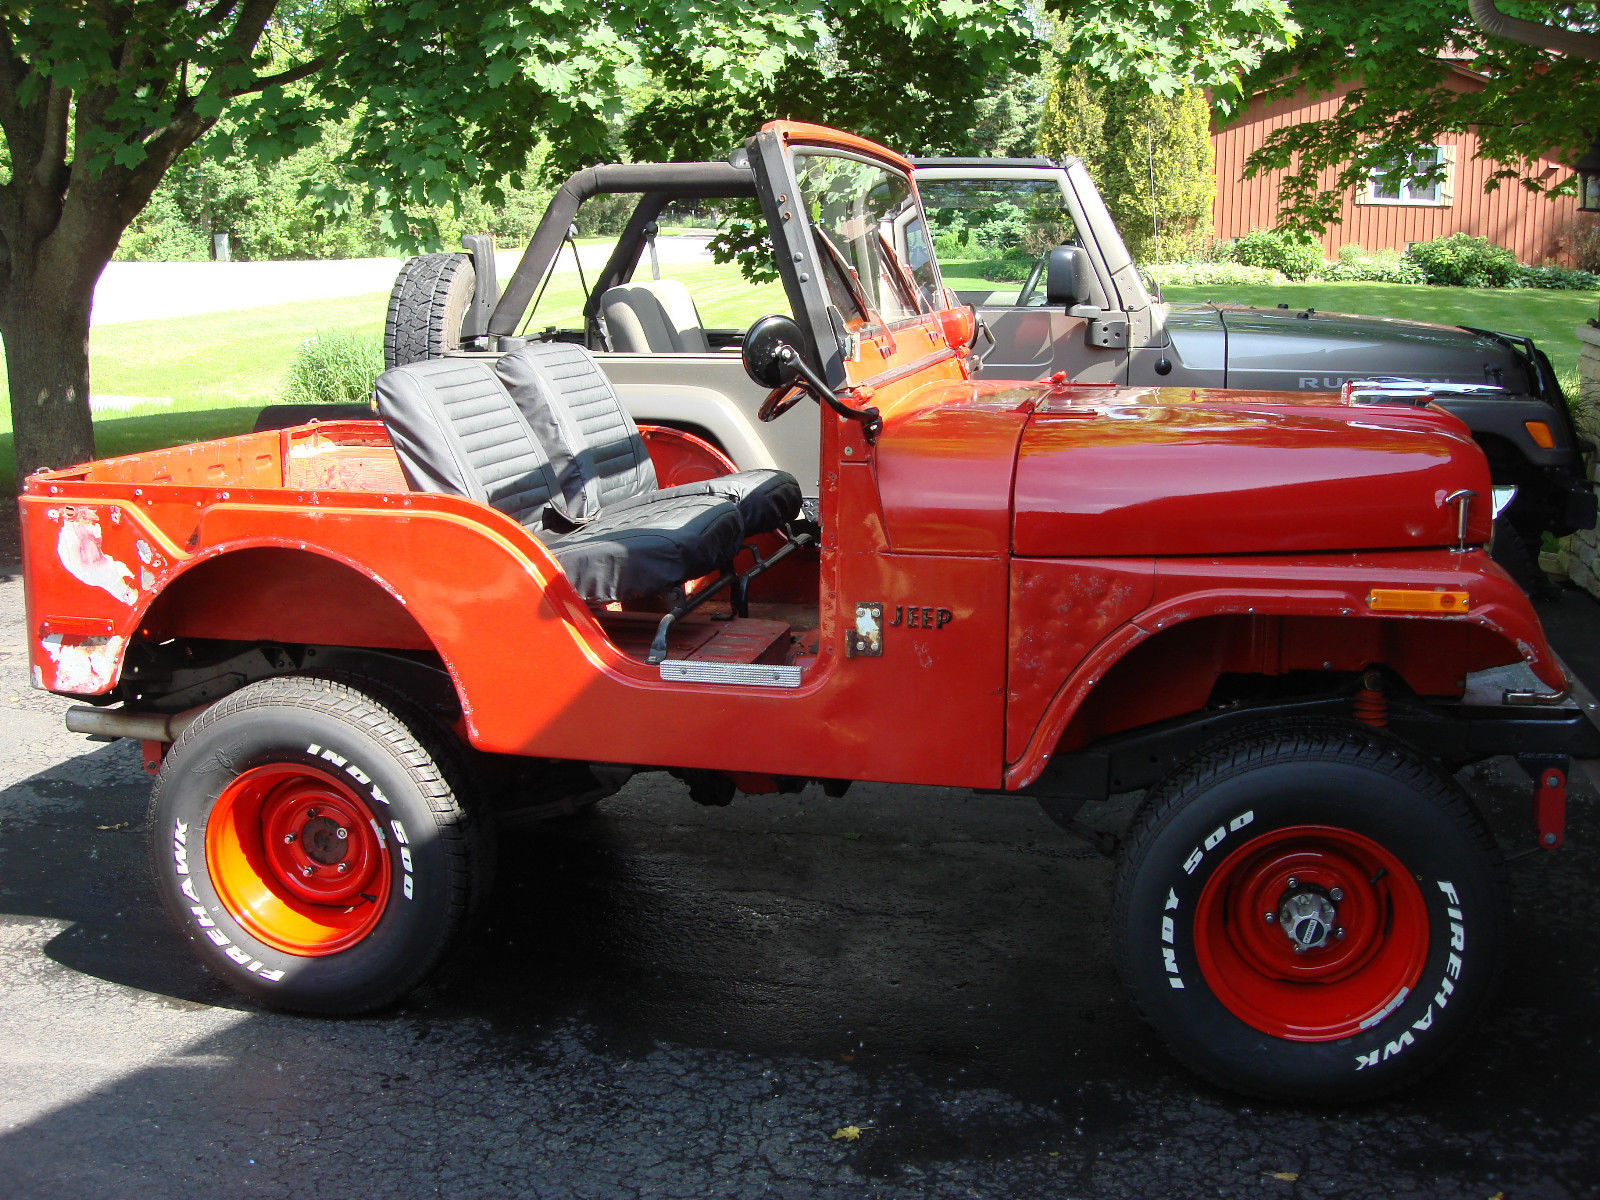 1971 jeep cj5 hotrod ratrod 302v8 auto 4x4 with factory hardtop for sale in elgin illinois. Black Bedroom Furniture Sets. Home Design Ideas